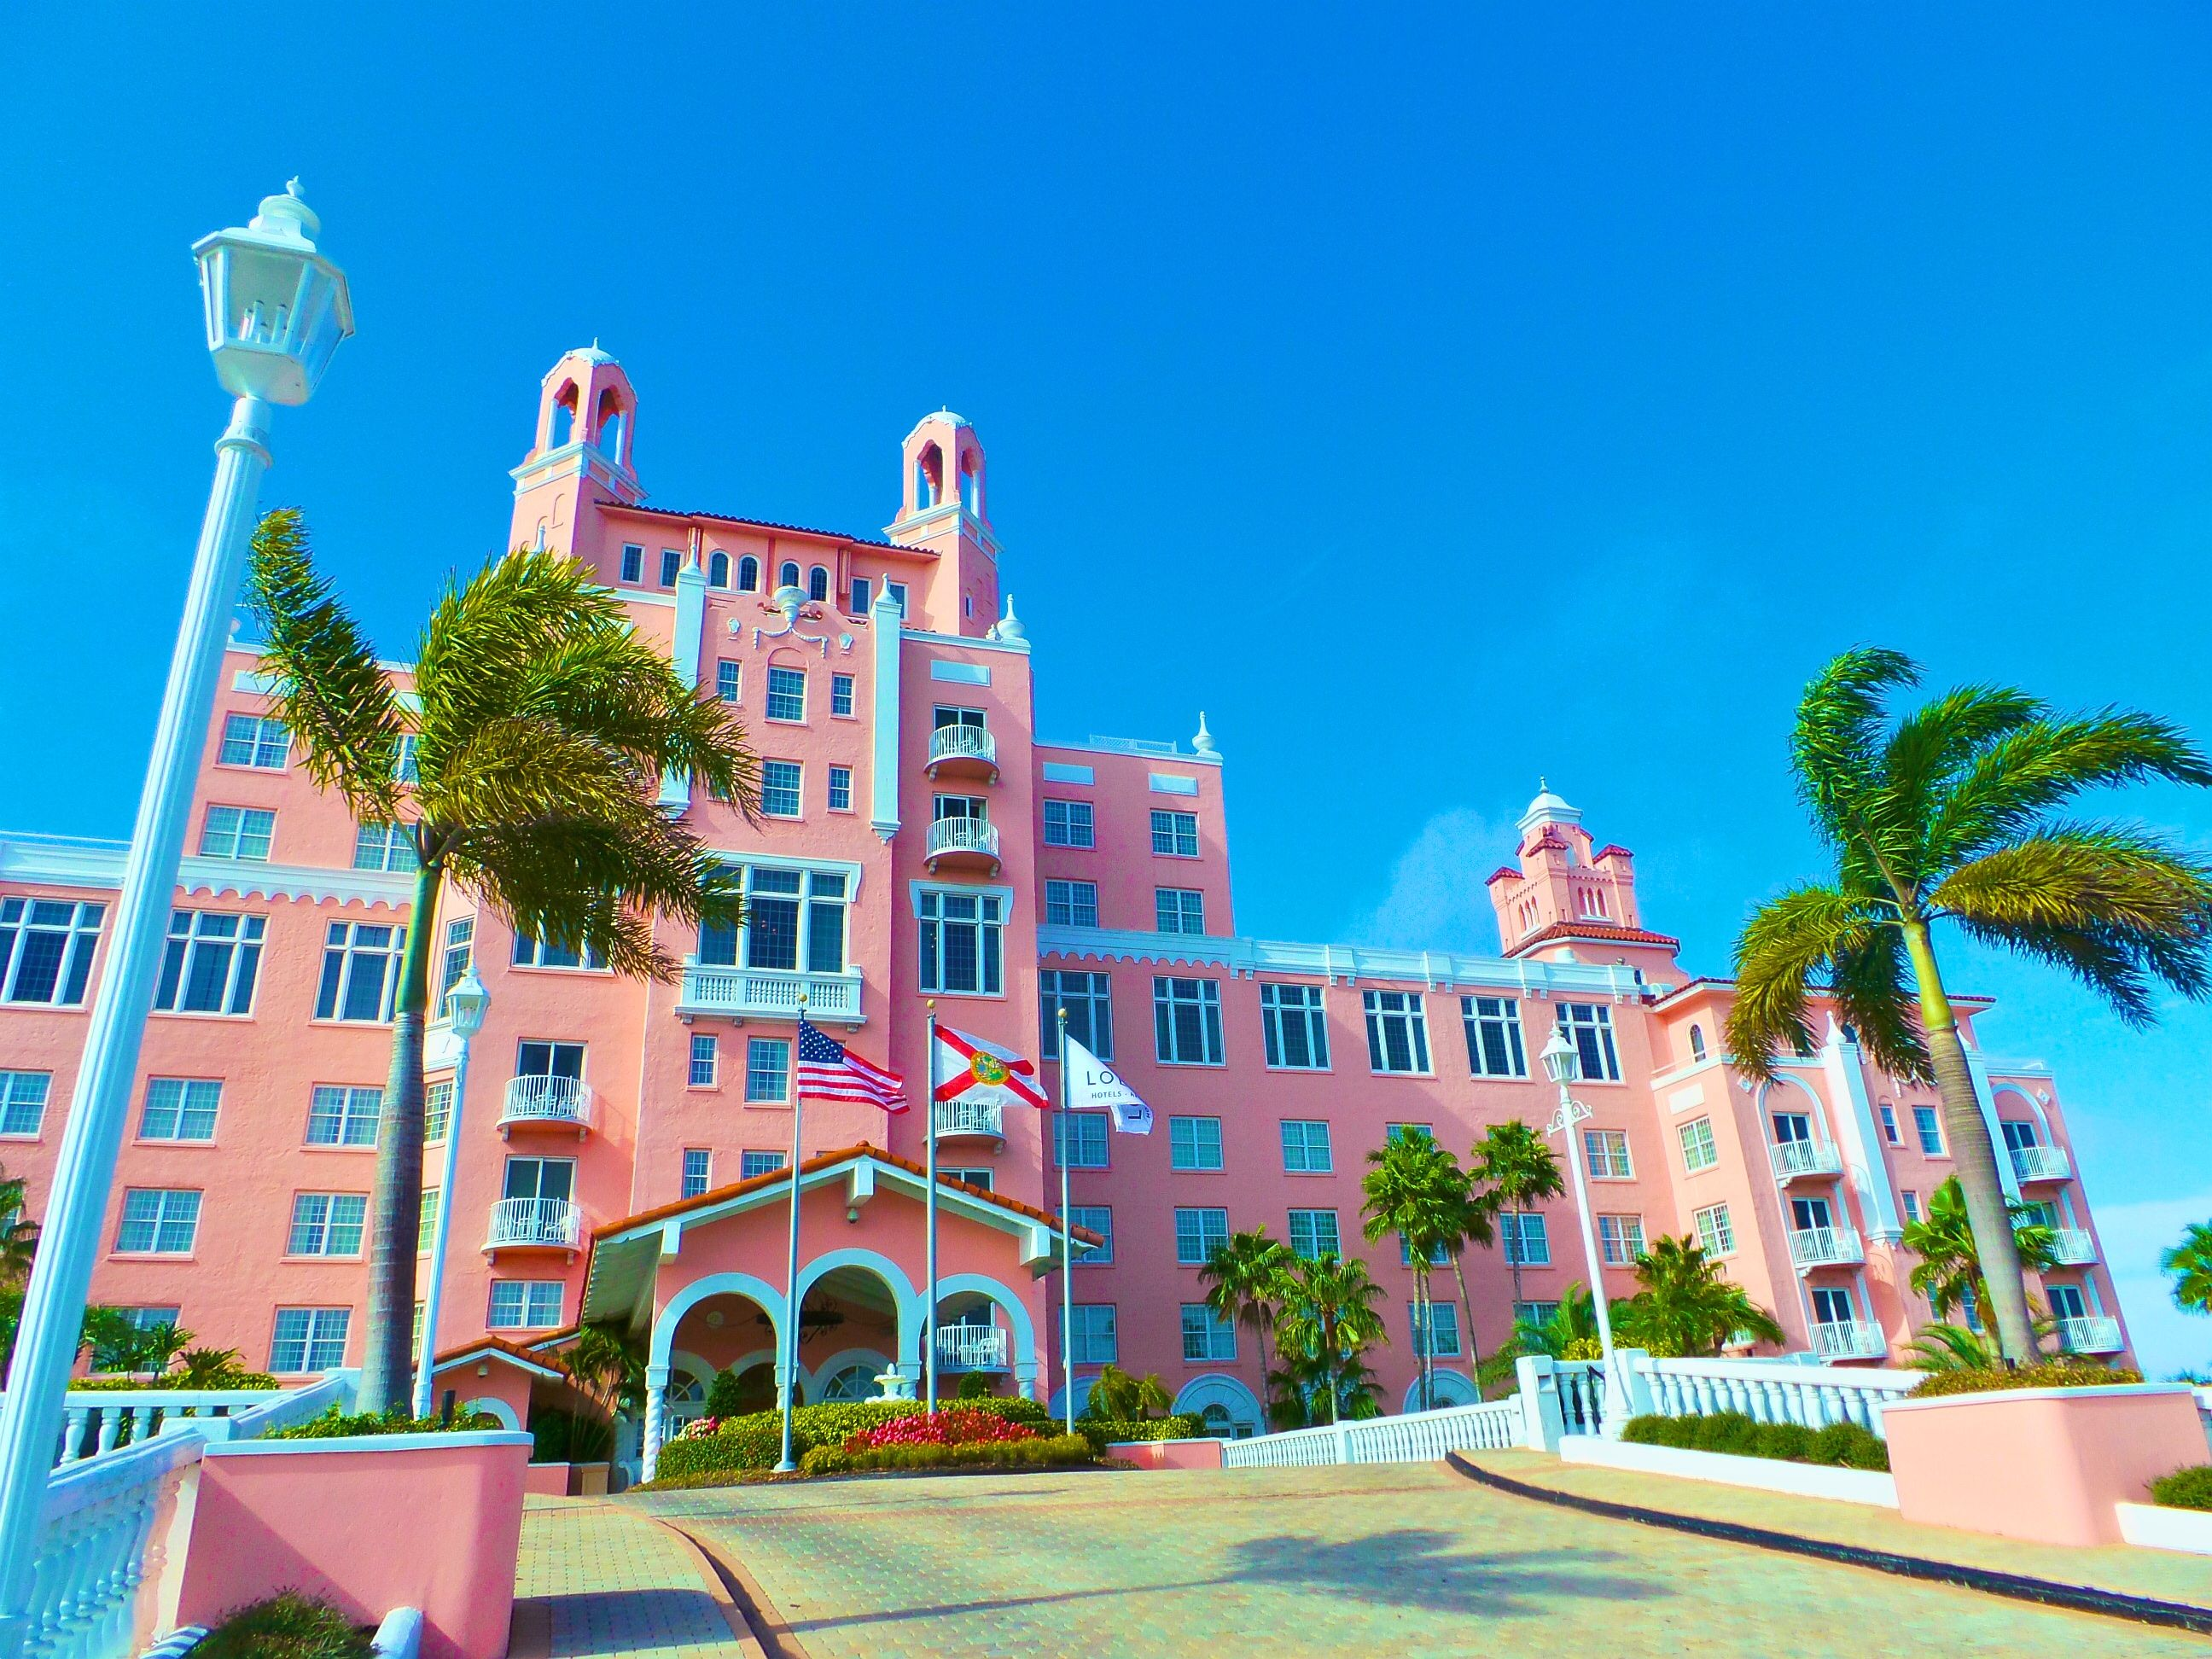 Loews Don Cesar Hotel In St Pete Beach Is Also Known As The Pink Palace